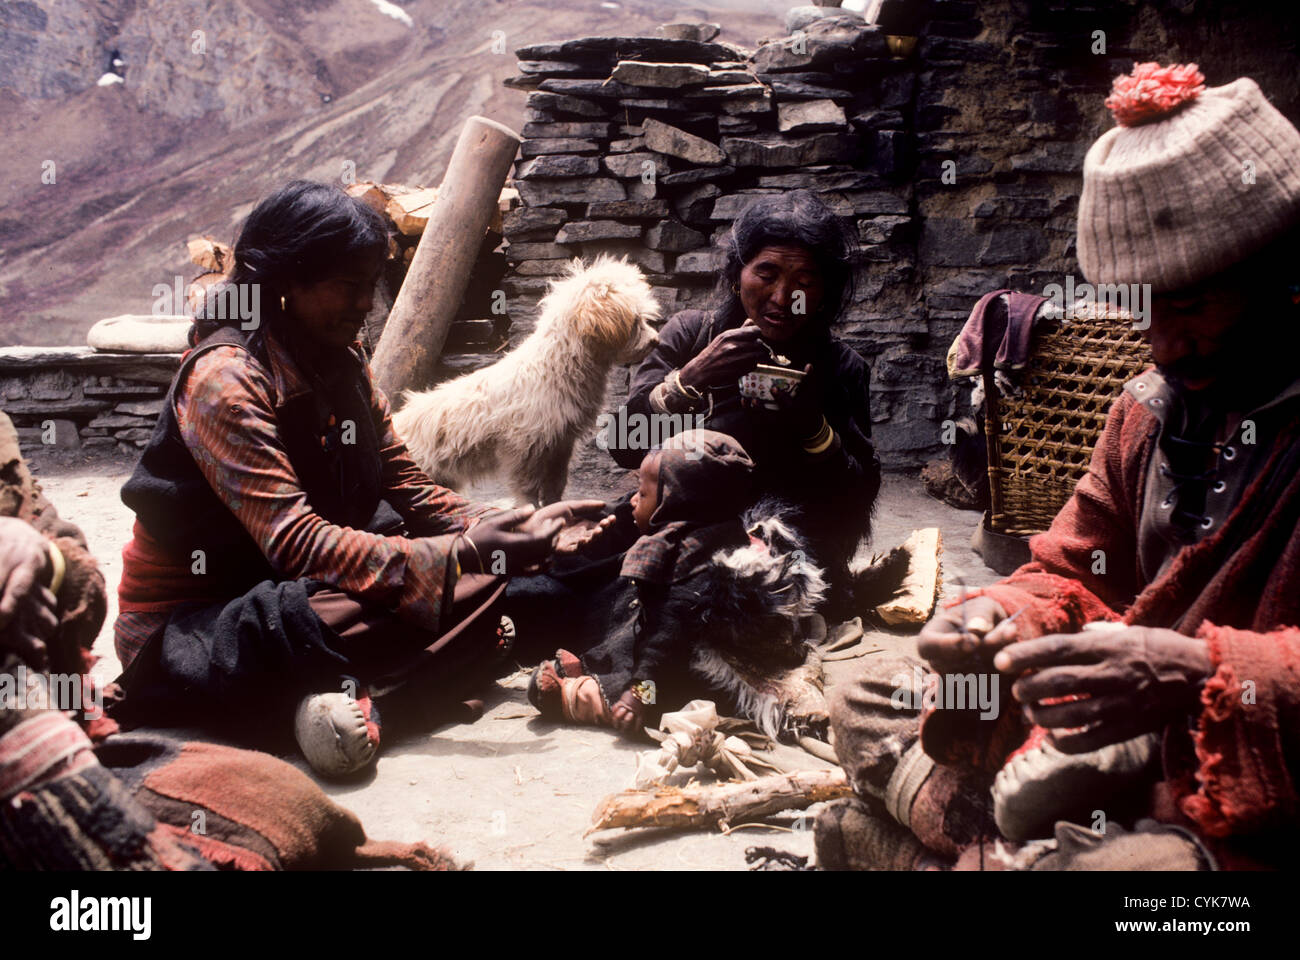 Bhotia lama monk with family on roof terrace of Bhotia village in Nar Phu Valley in the Himalayas near the Nepal - Stock Image